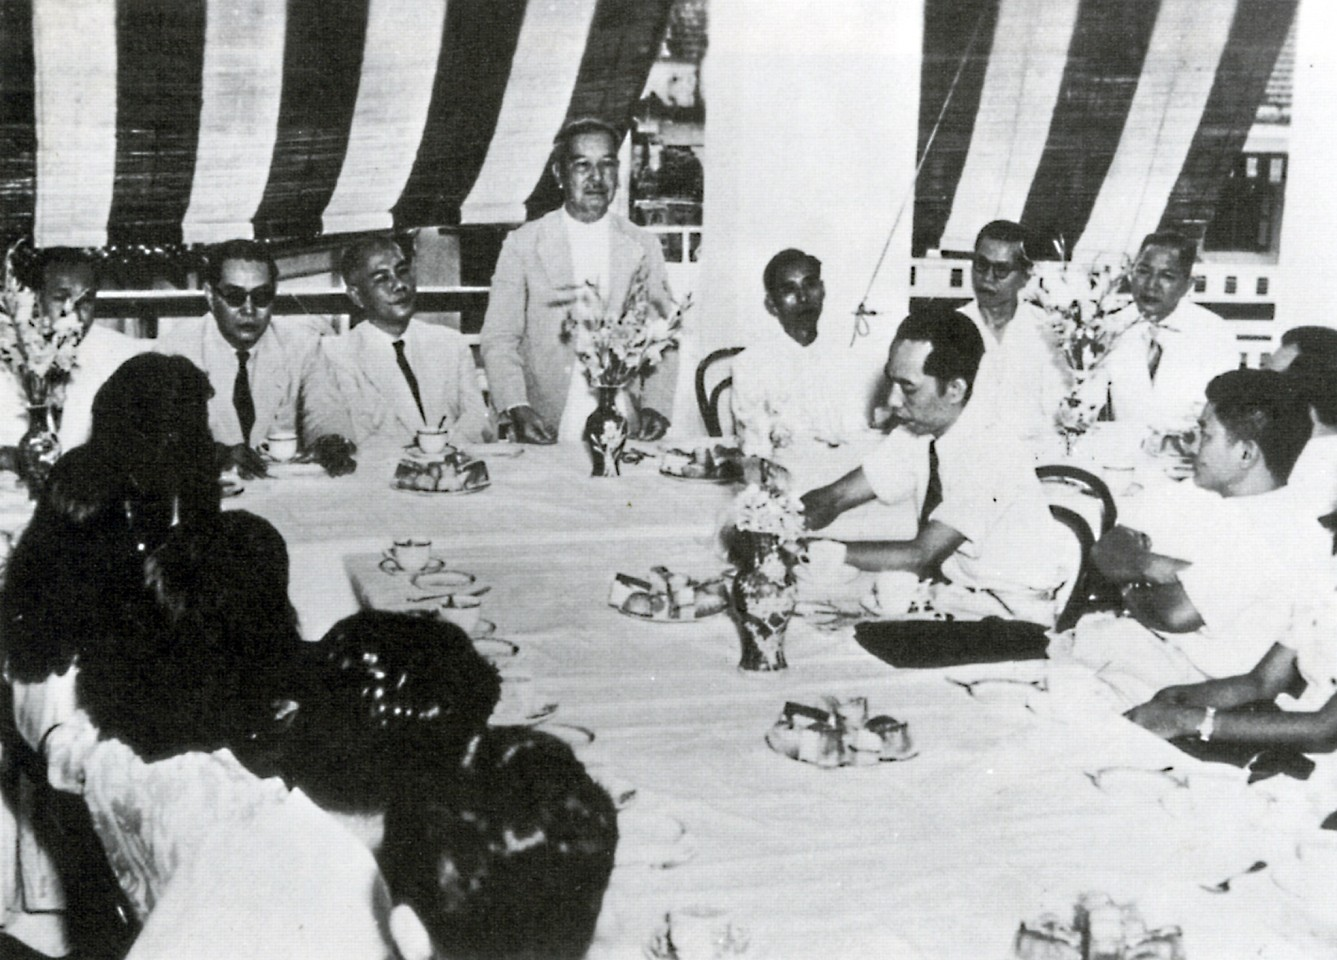 Mr Tan Kah Kee (standing) addressing a gathering of Chinese community leaders in the Ee Hoe Hean Club during the 1930s. (Ee Hoe Hean Club)